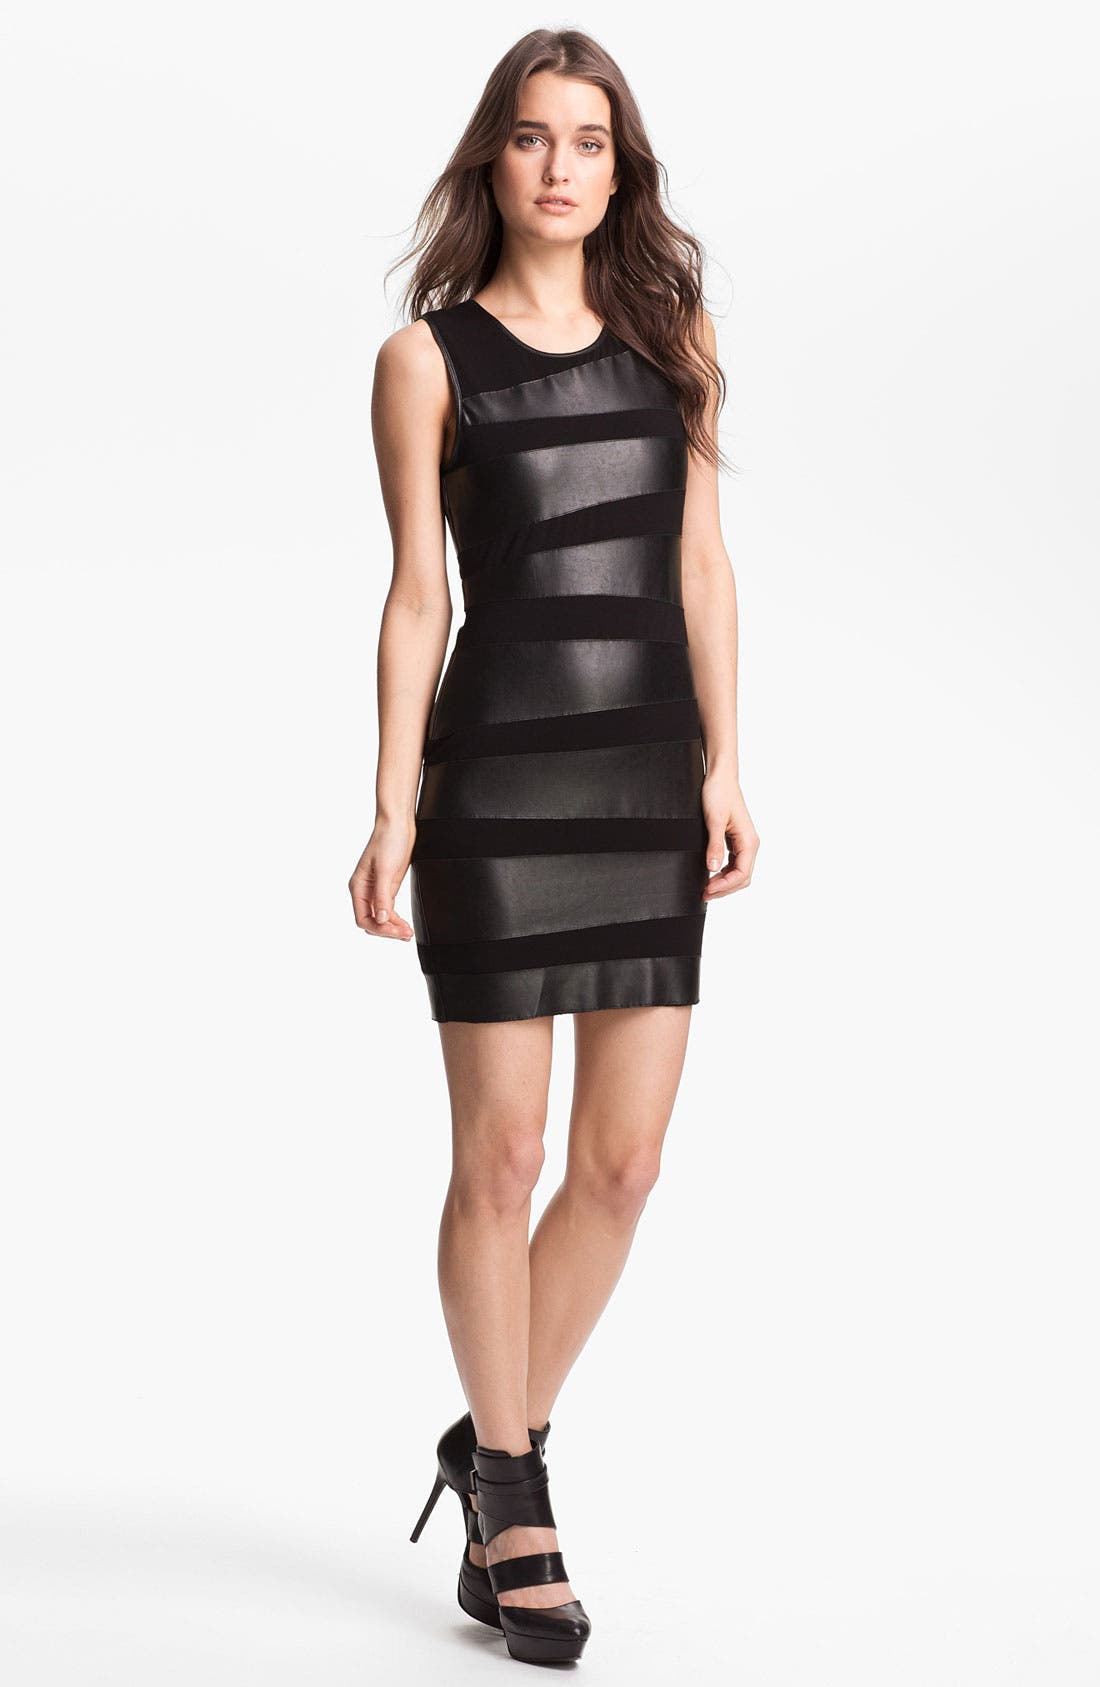 Alternate Image 1 Selected - B44 Dressed by Bailey 44 'Toro' Faux Leather Bandage Dress